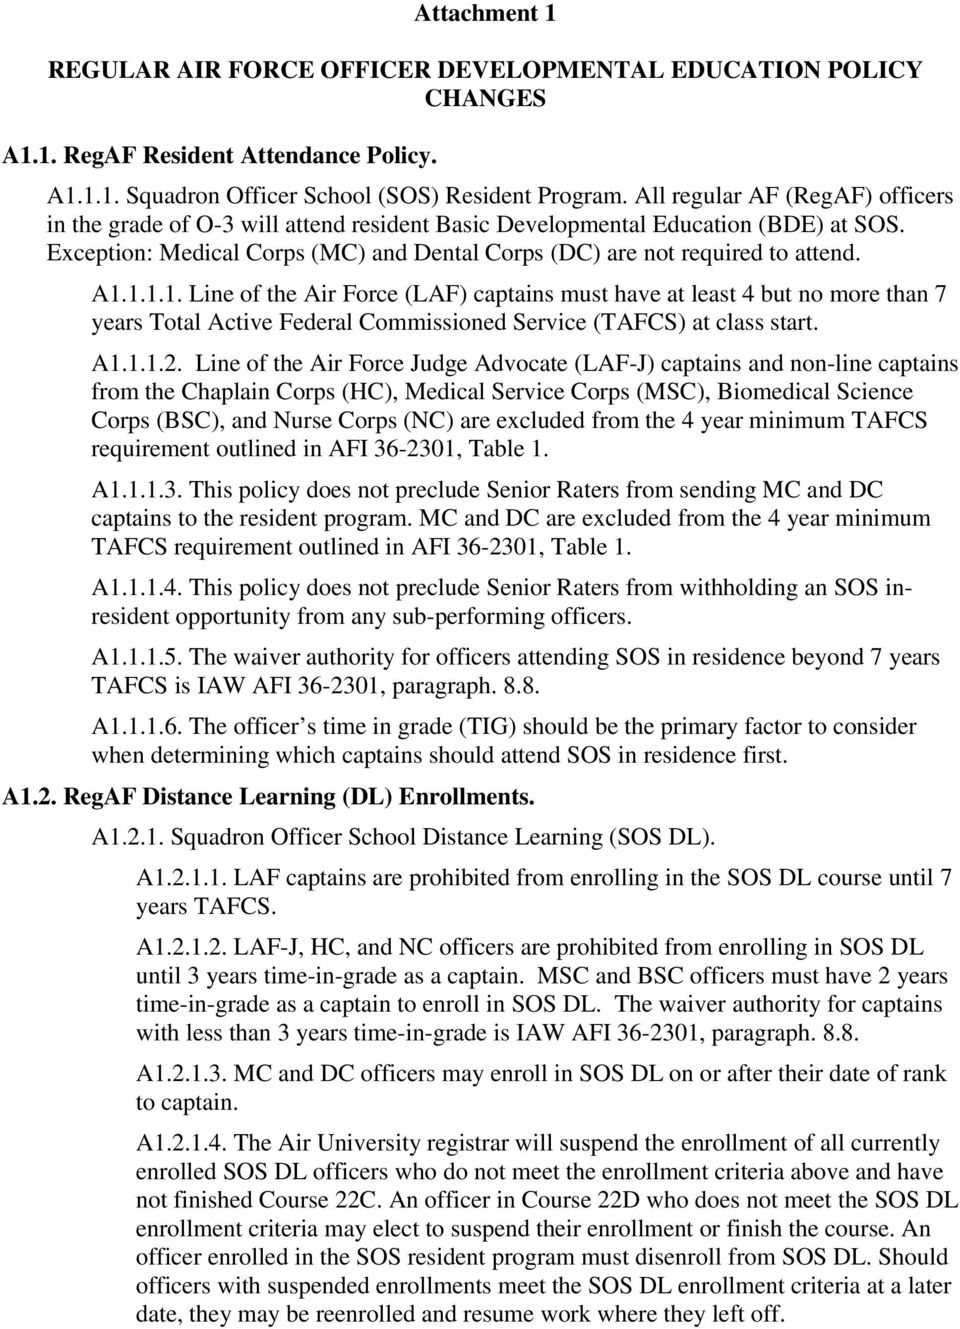 DEPARTMENT OF THE AIR FORCE - PDF